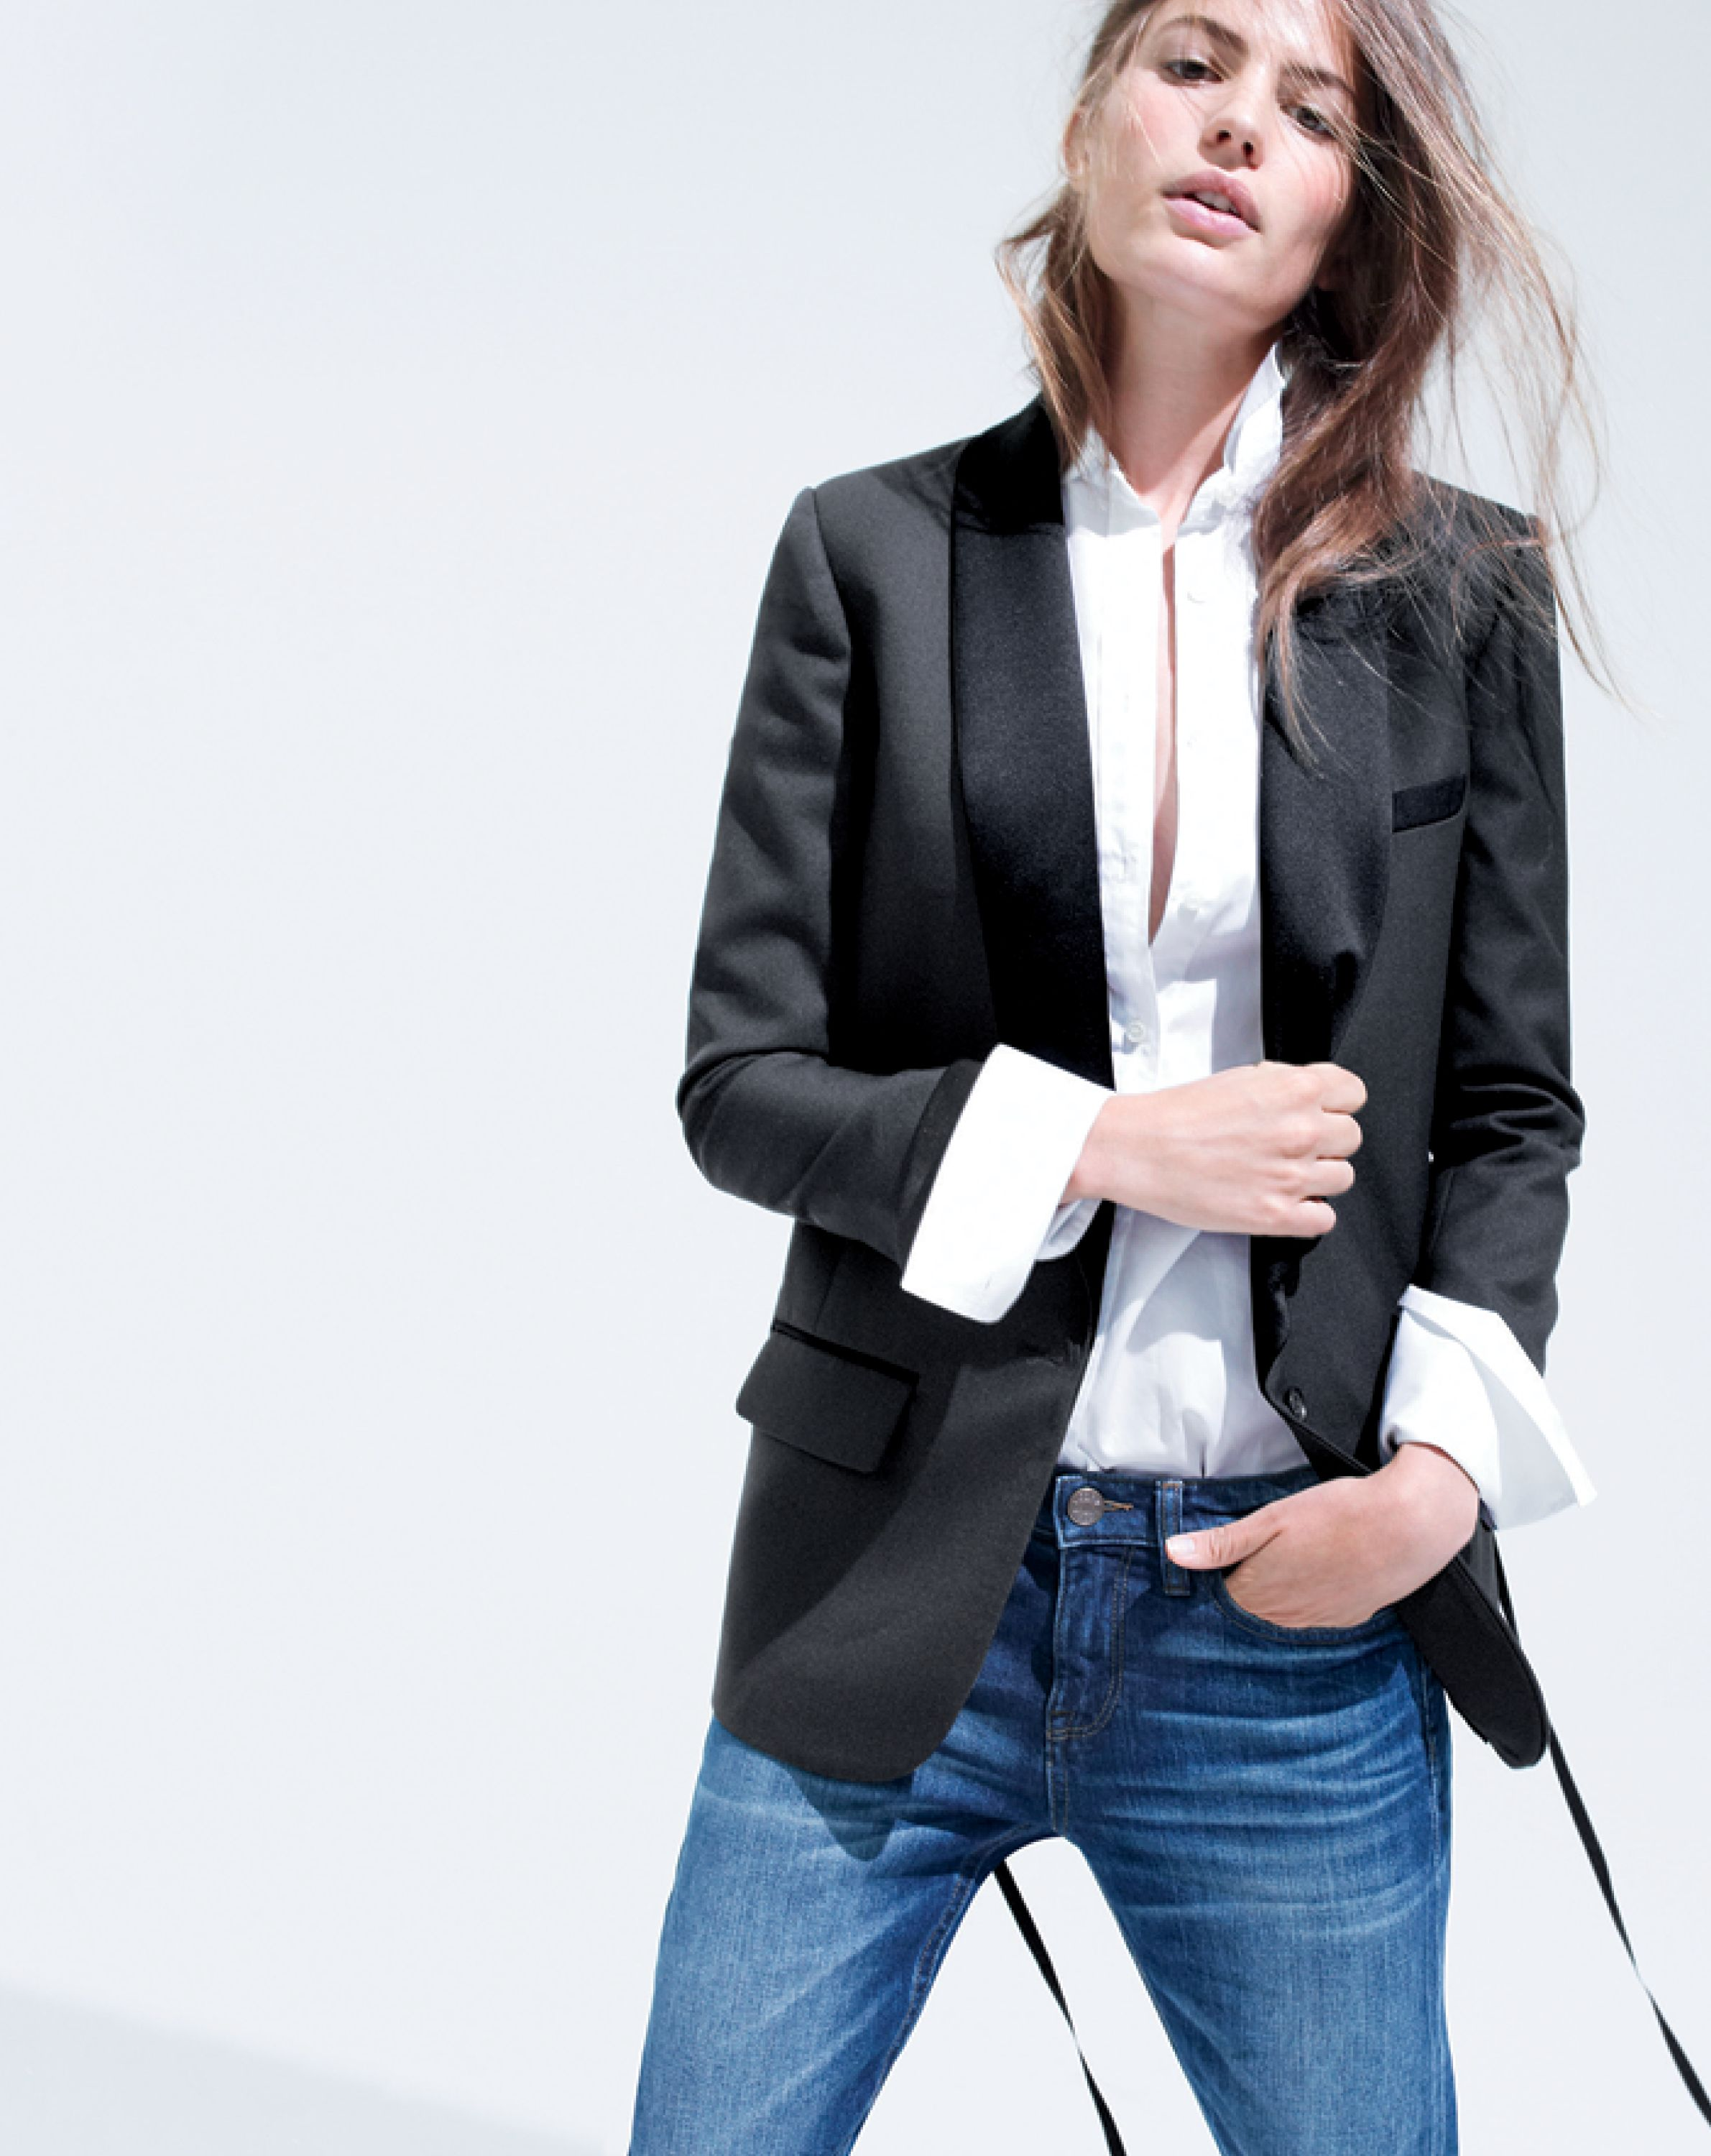 d43b5ab5a91d4 J.Crew women s Collection shawl-collar tuxedo blazer. To preorder call 800  261 7422 or email verypersonalstylist jcrew.com.